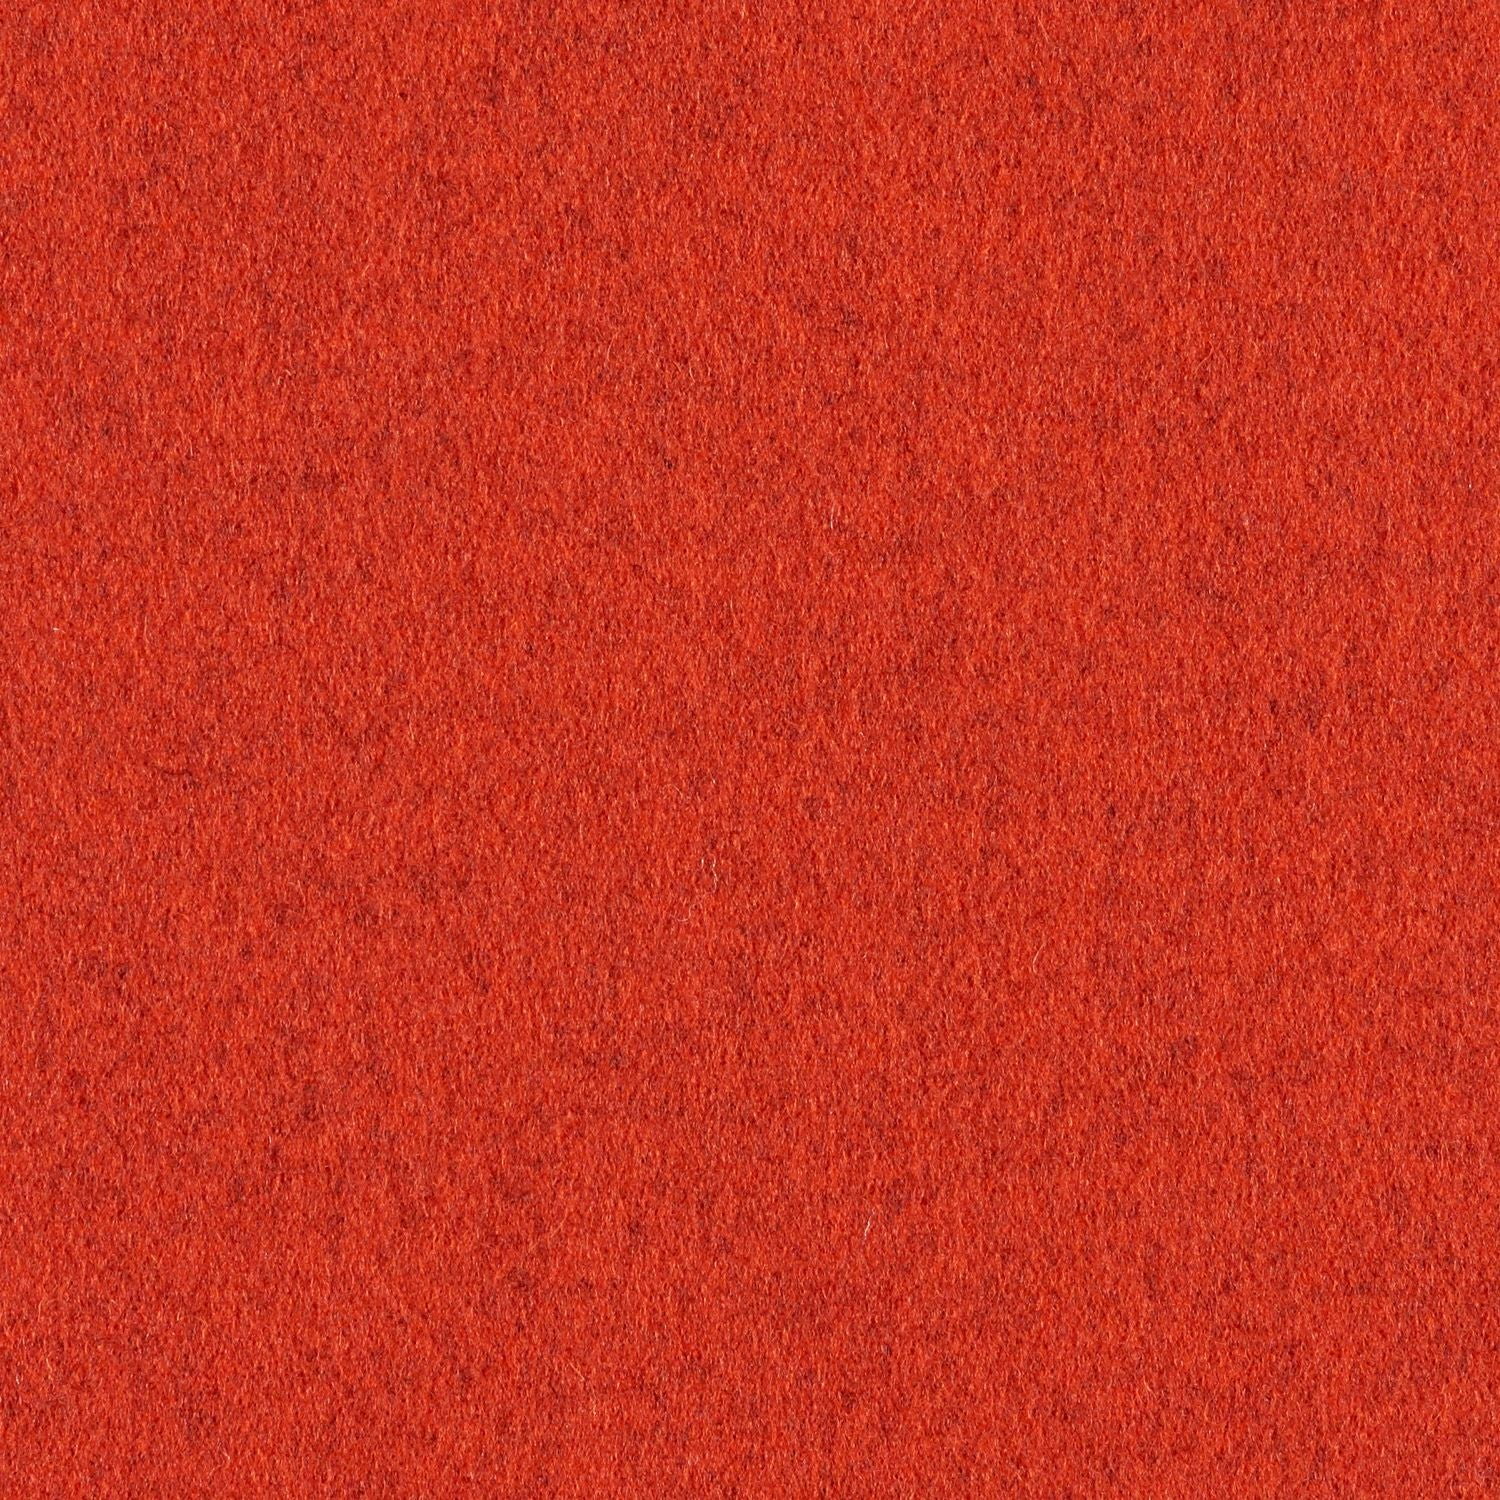 Heather Felt - Scarlet - 4007 - 16